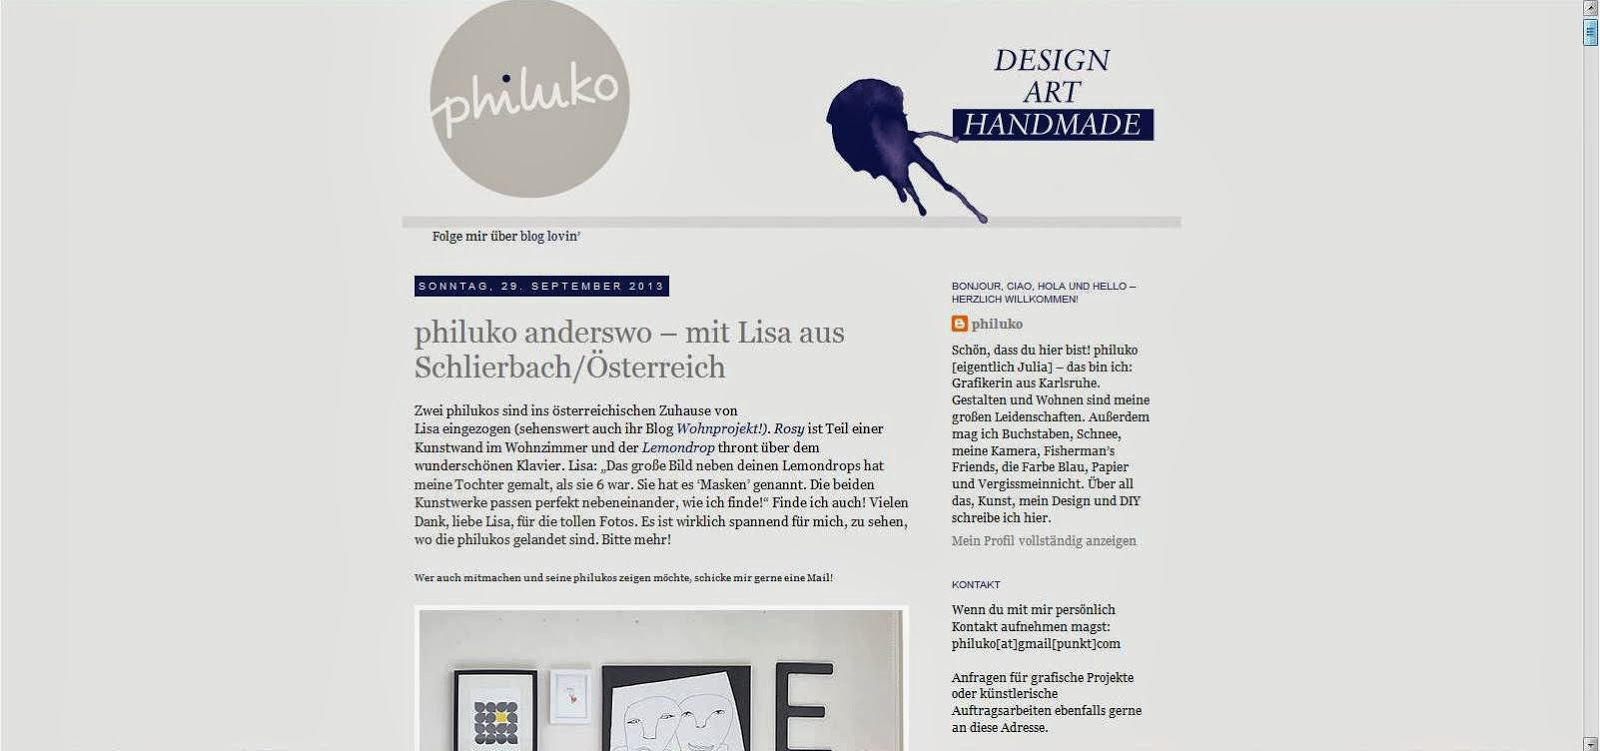 http://philuko.blogspot.co.at/2013/09/philuko-anderswo-mit-lisa-aus.html